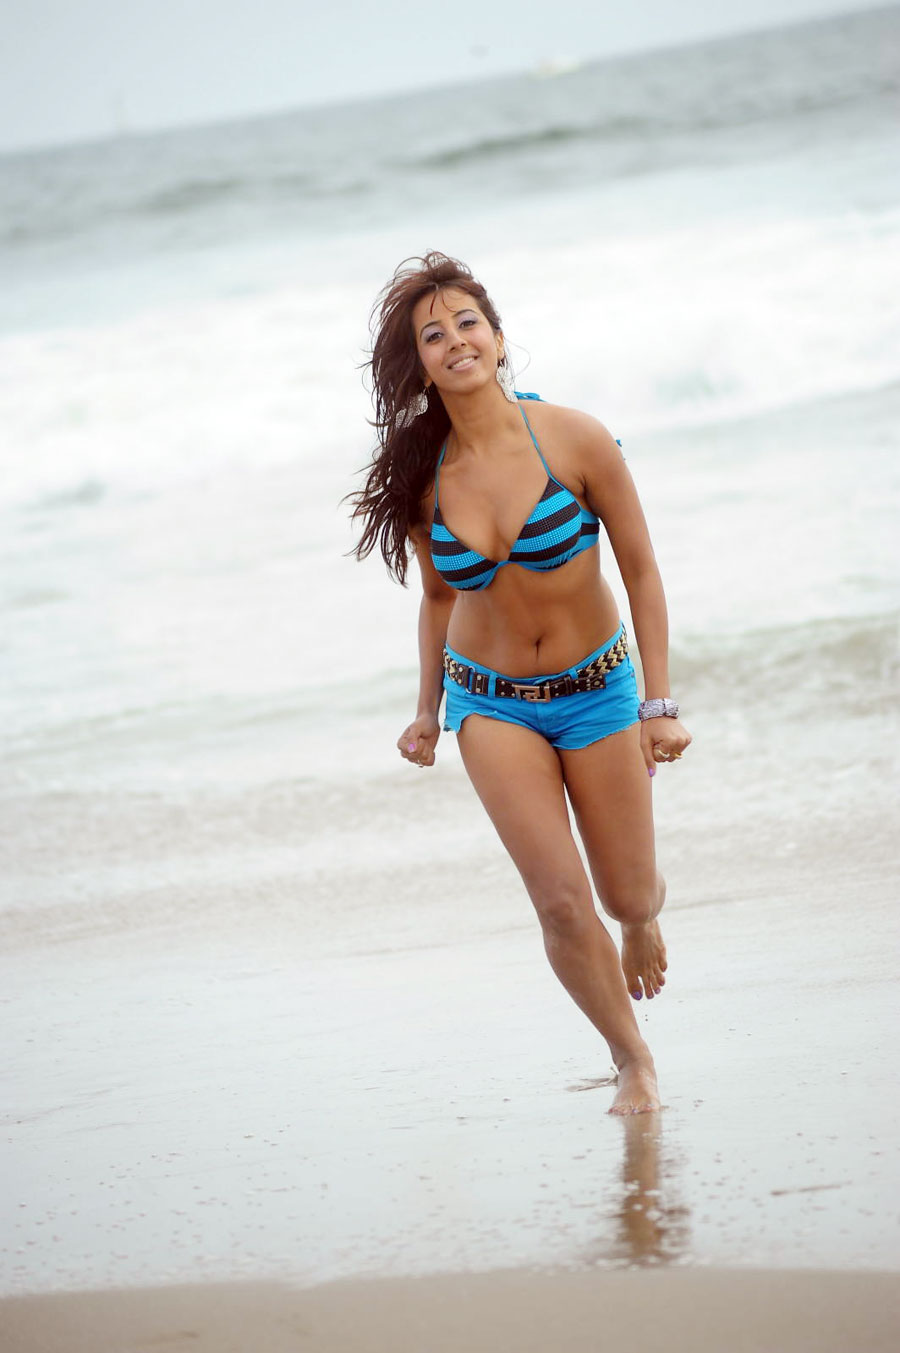 sanjjana bikini beach latest photos